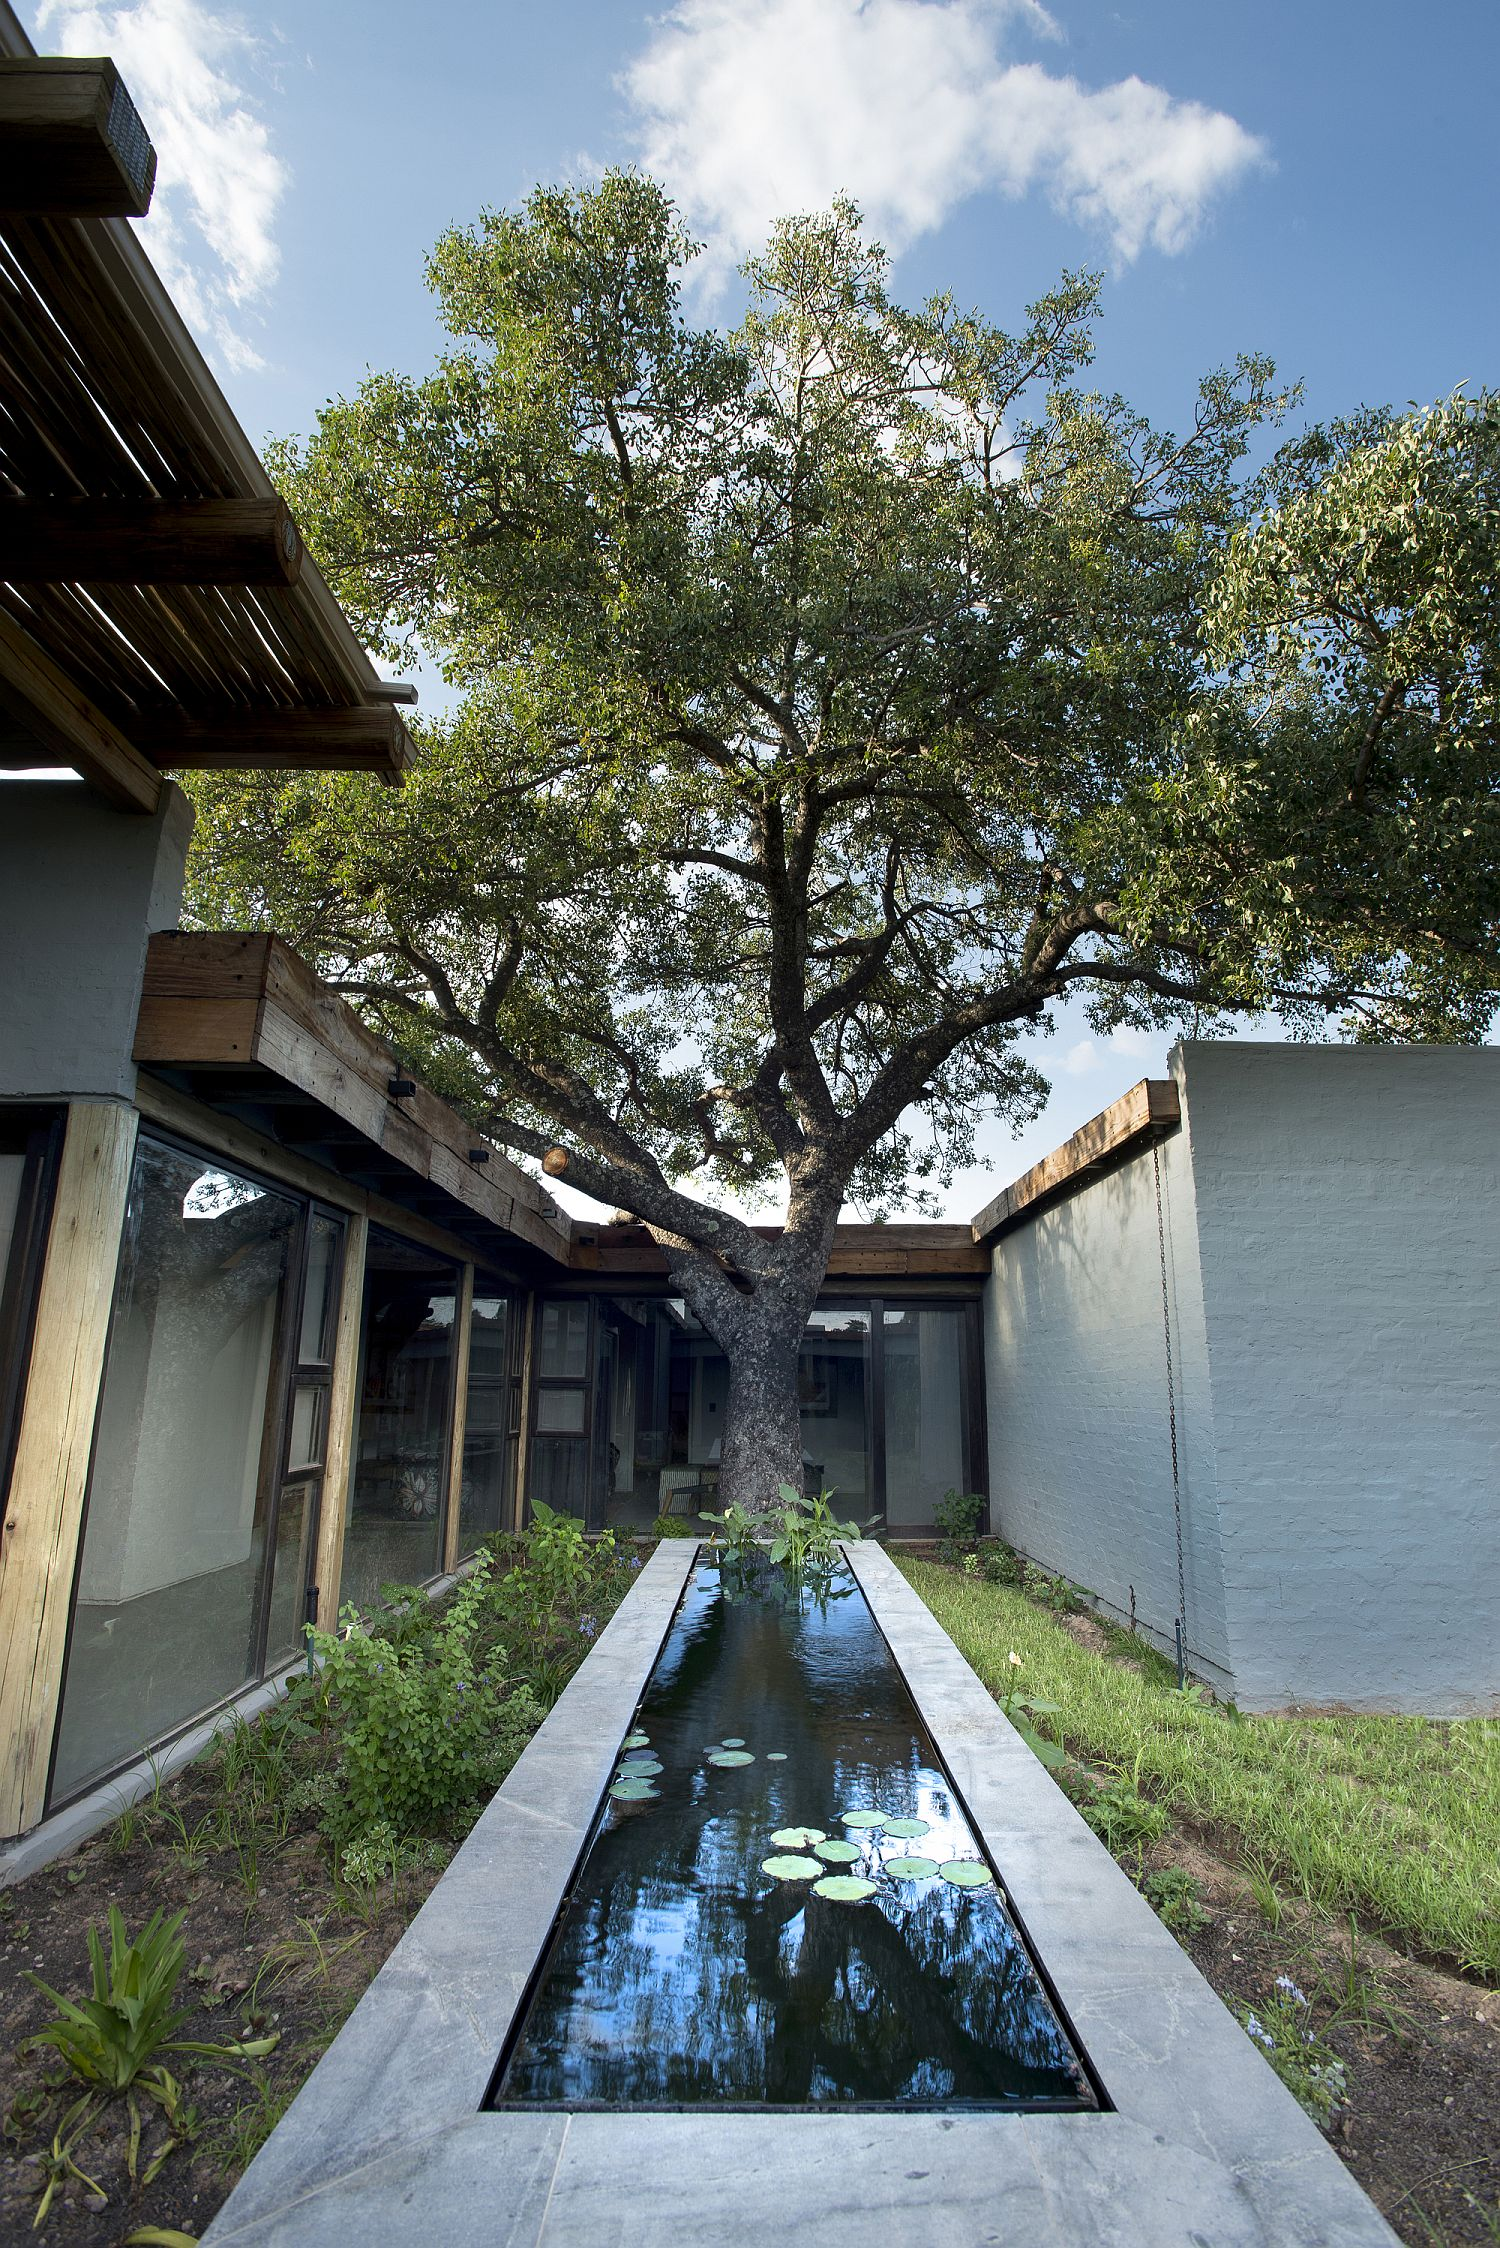 Existing-trees-around-the-house-have-been-carefully-integrated-into-its-design-plan